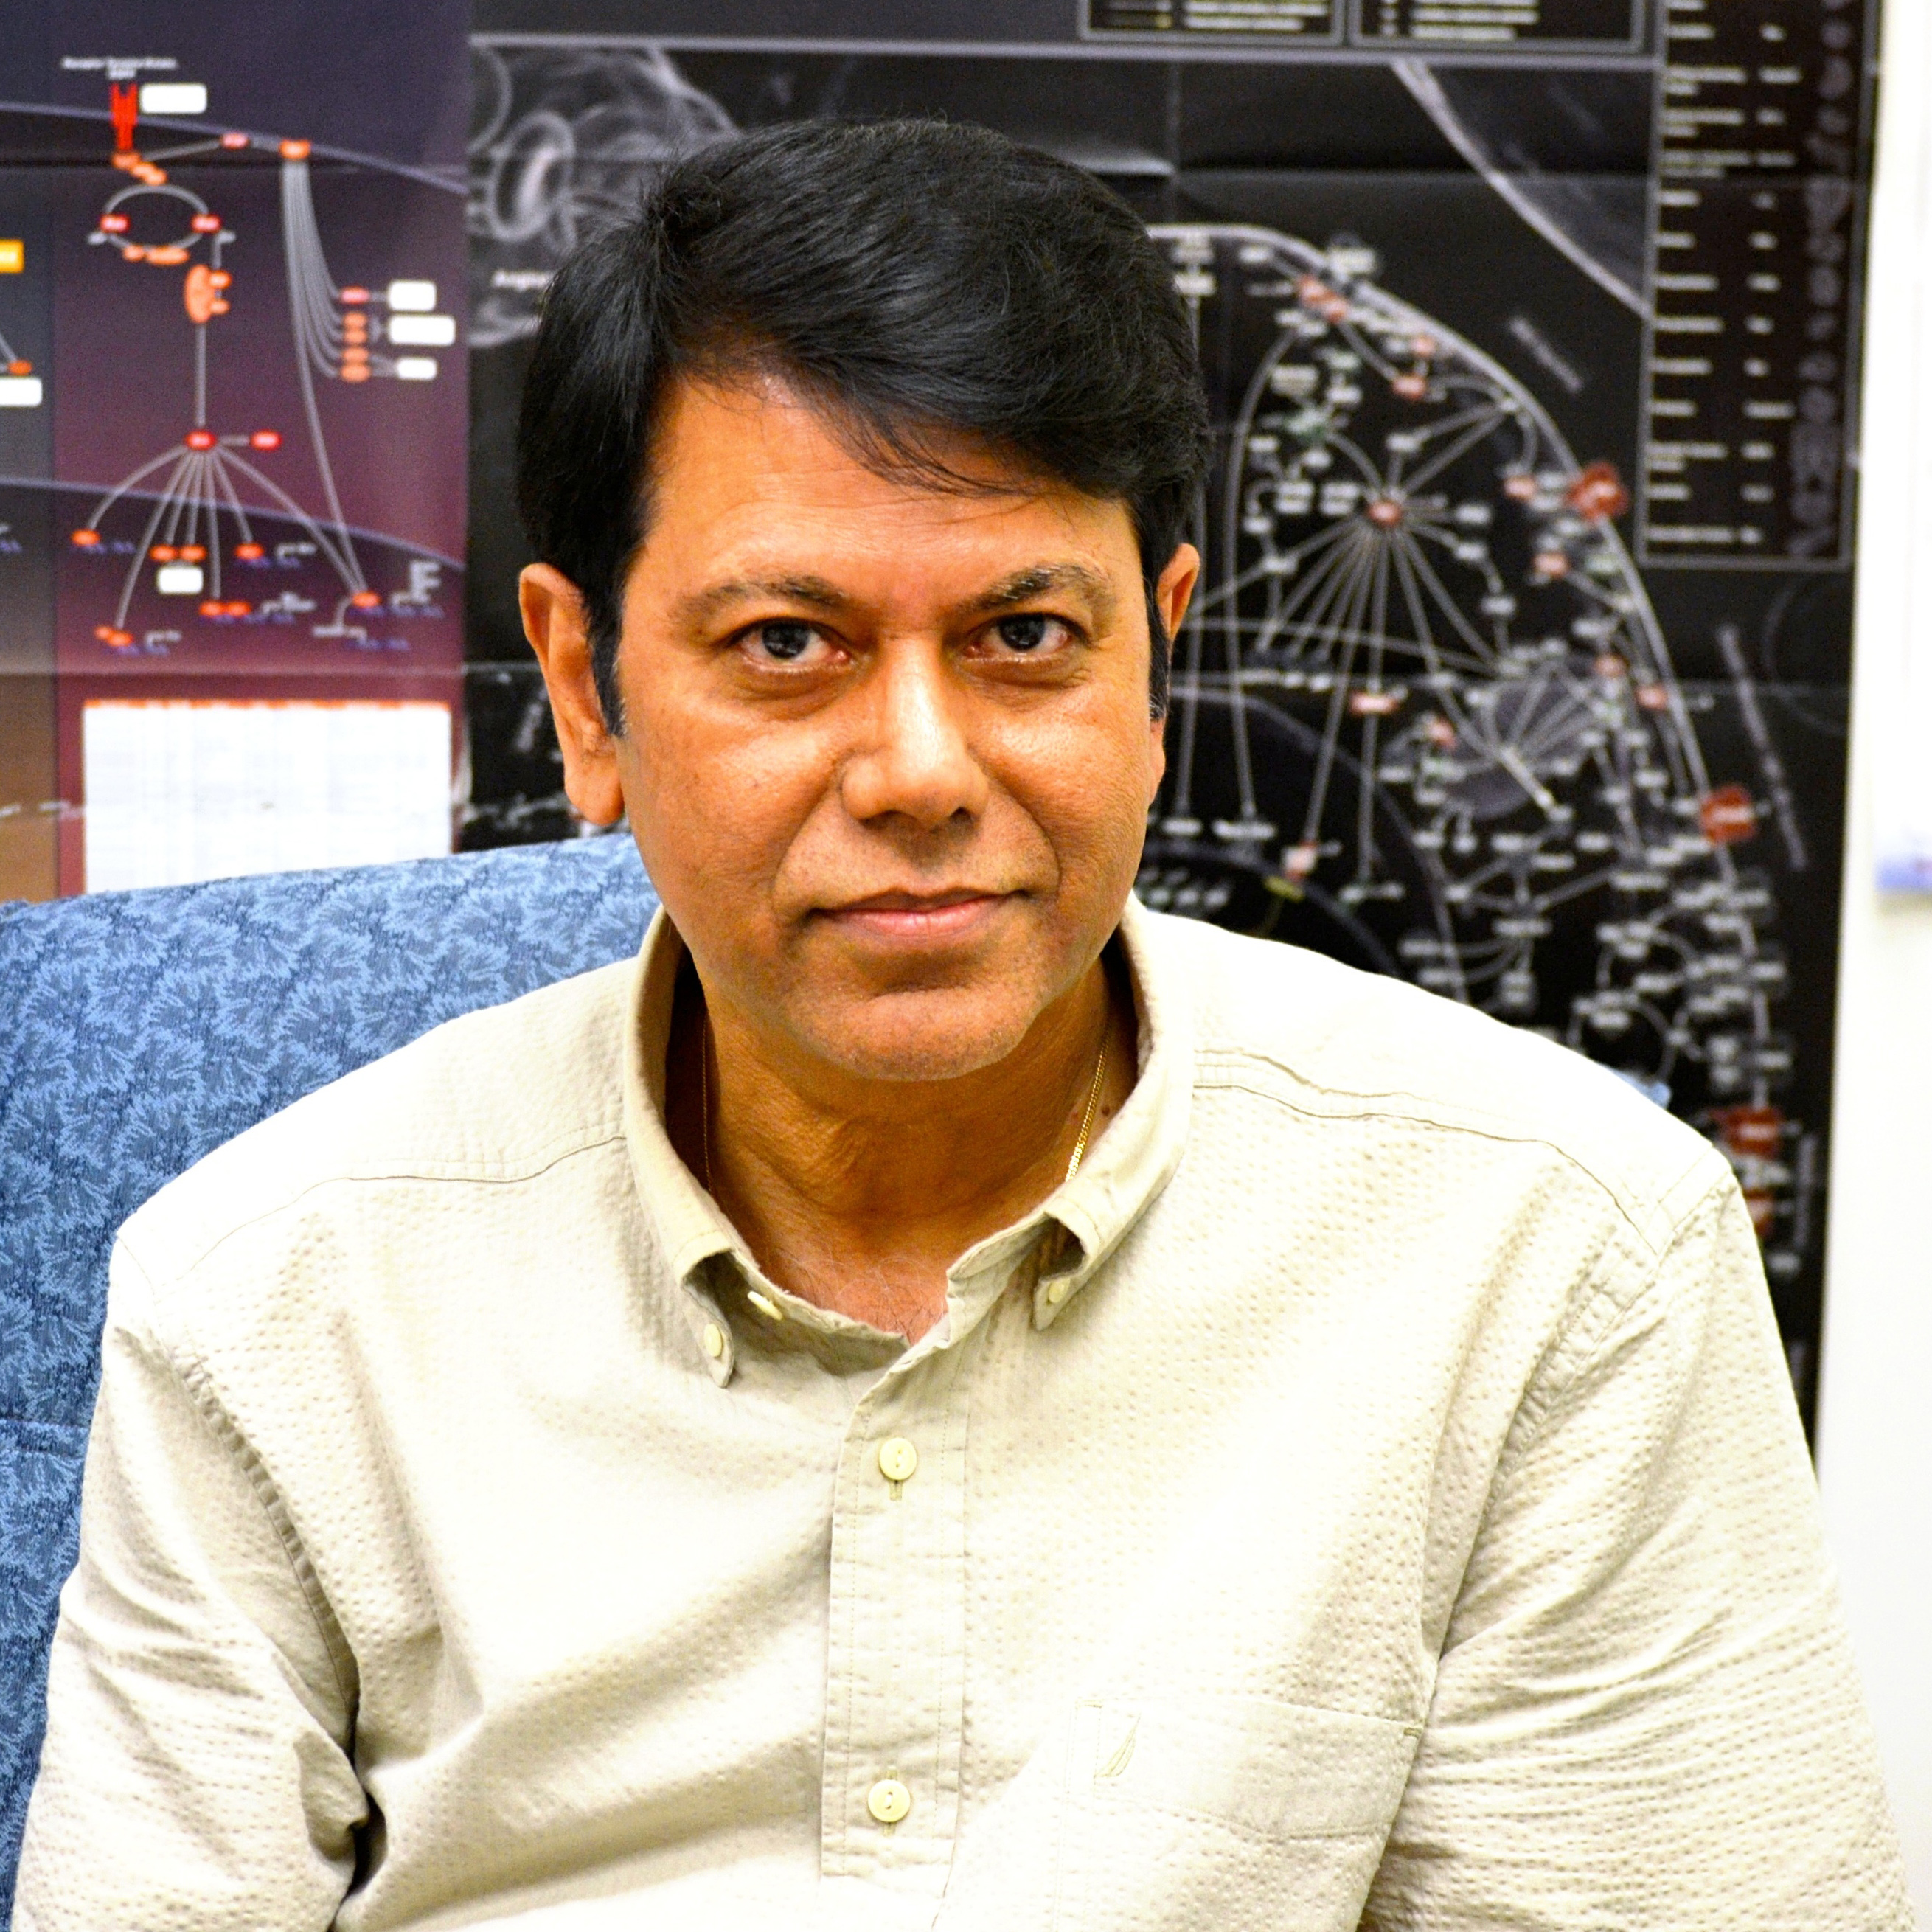 Headshot of Partha Banerjee in his office.